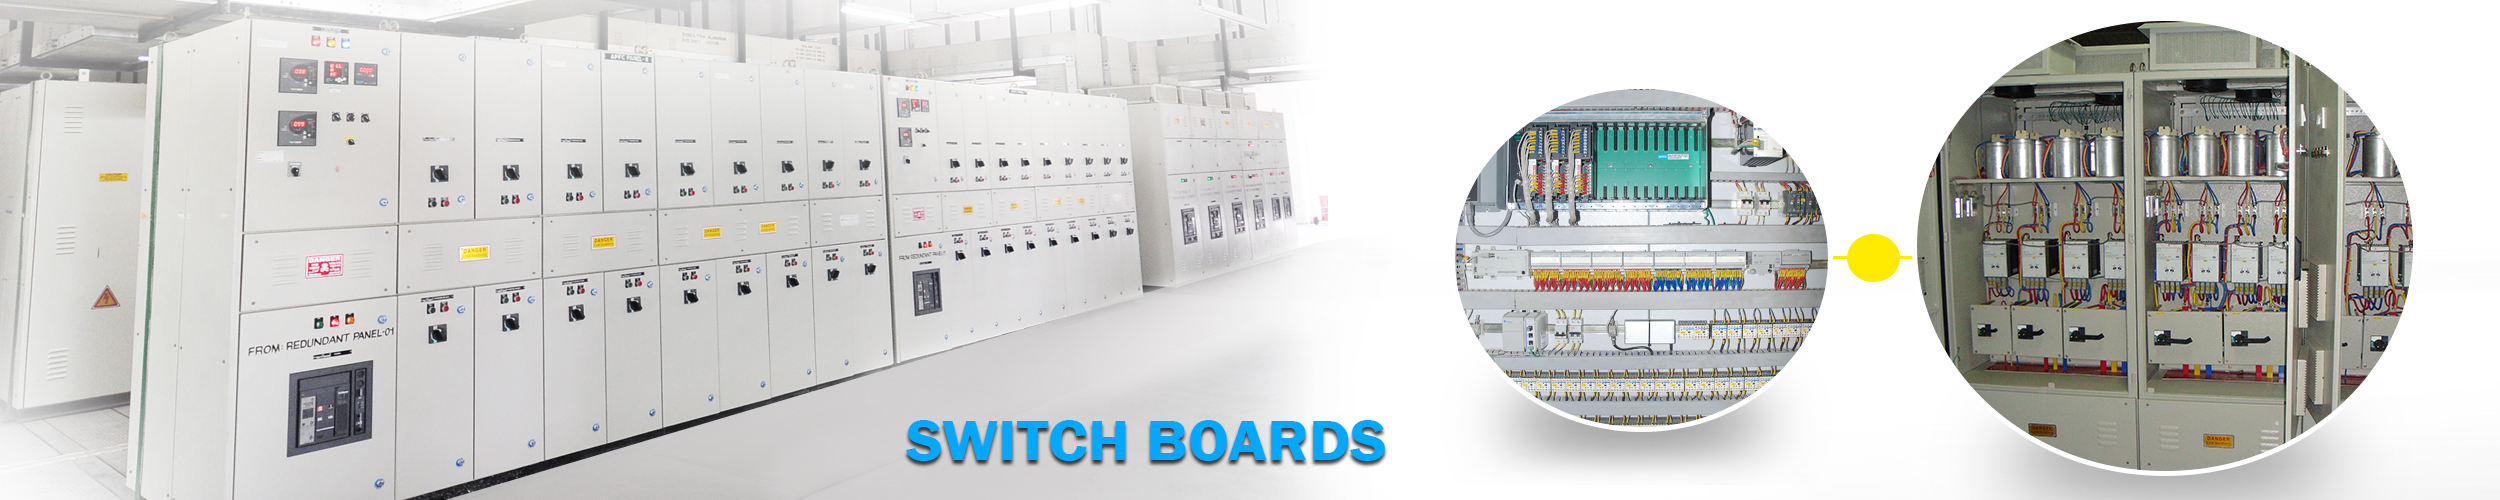 switch-boards